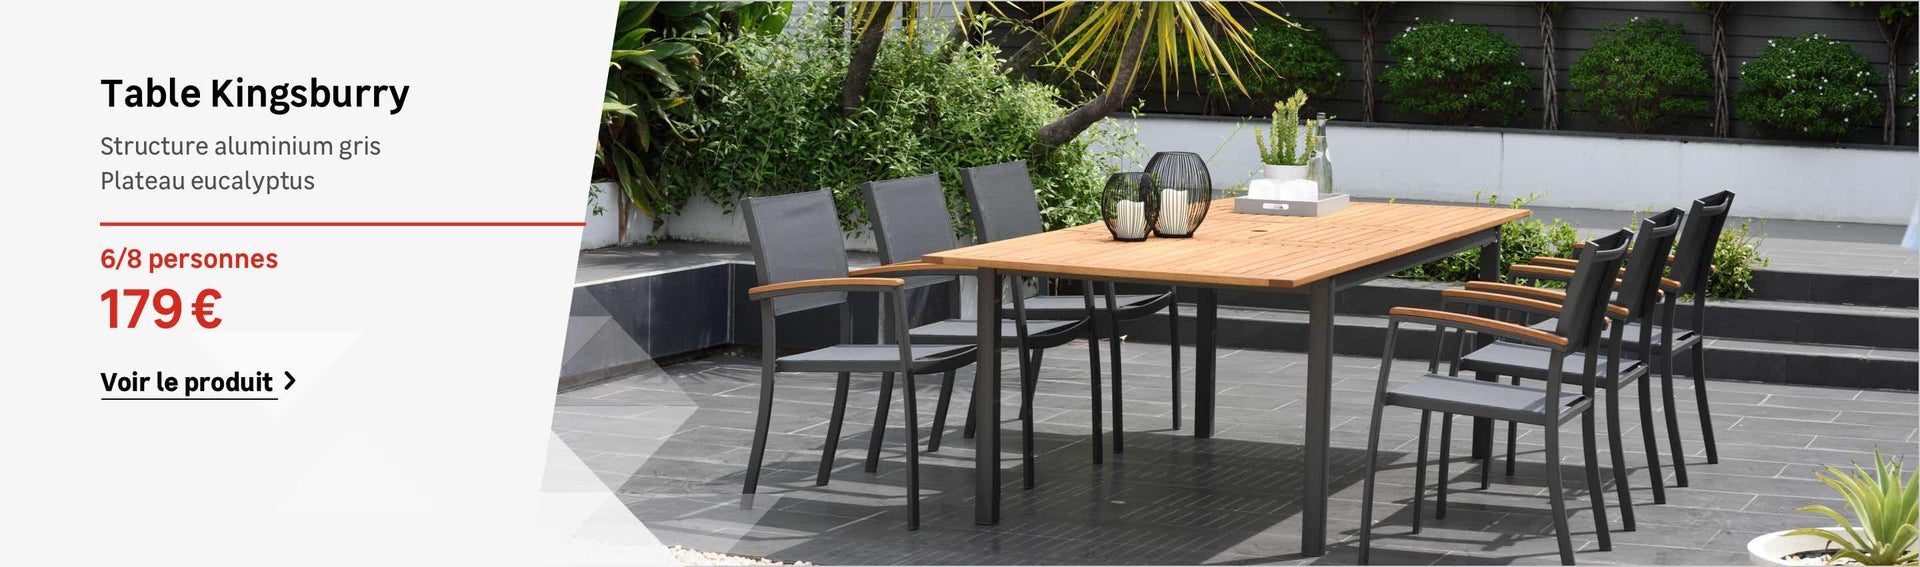 Table Bistrot 4 Personnes Charmant Table Et Chaise Pour Terrasse Pas Cher Of 24 Inspirant Table Bistrot 4 Personnes